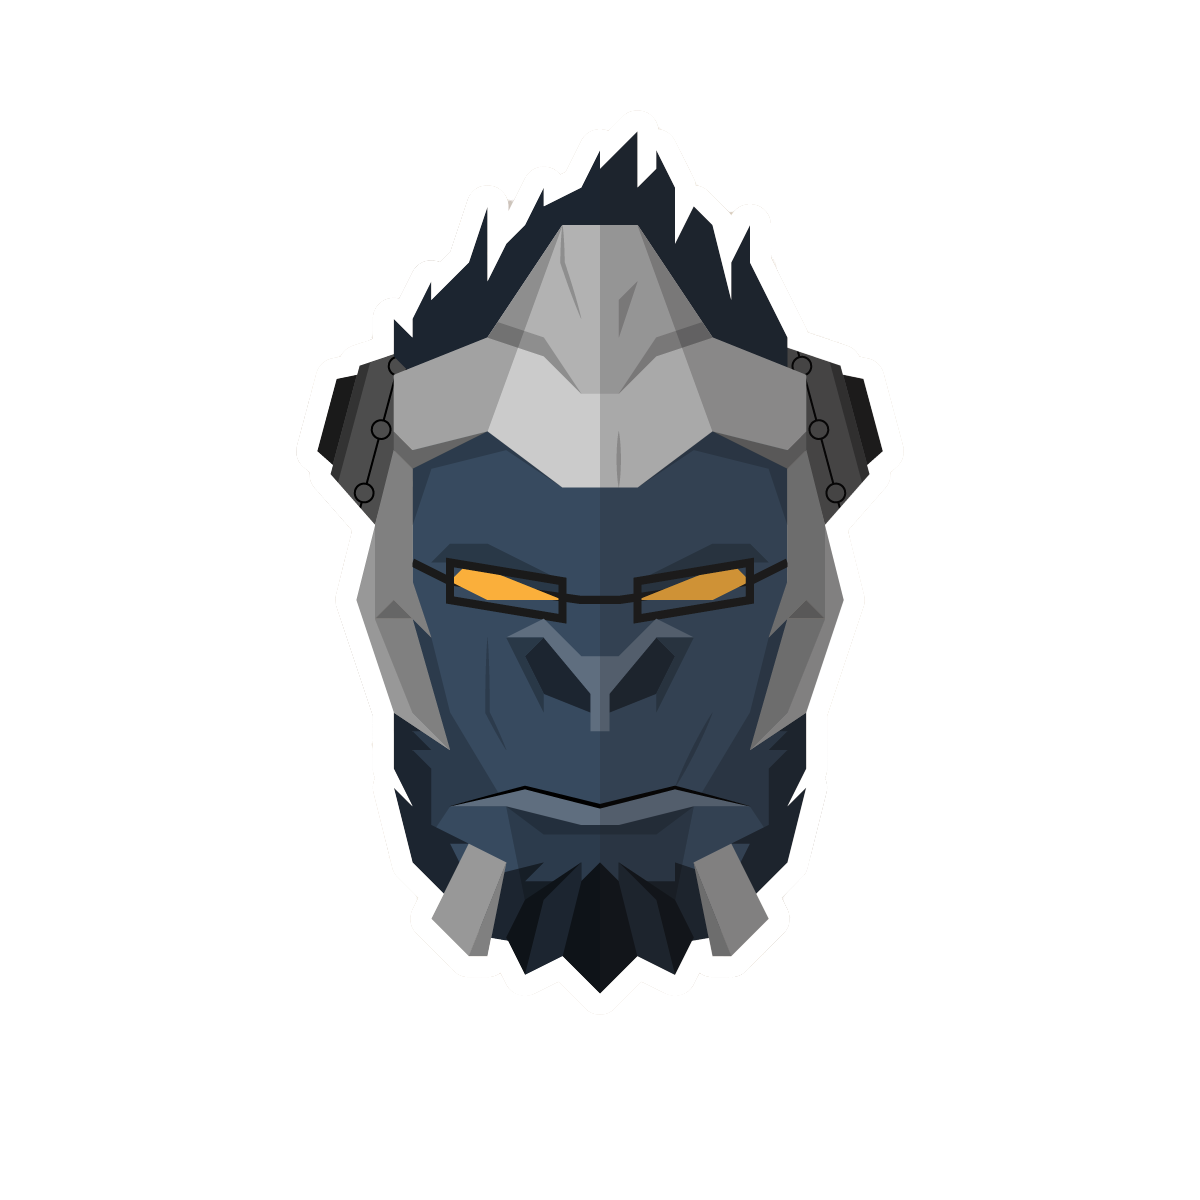 The Heroes Of Overwatch Sticker Pack messages sticker-4